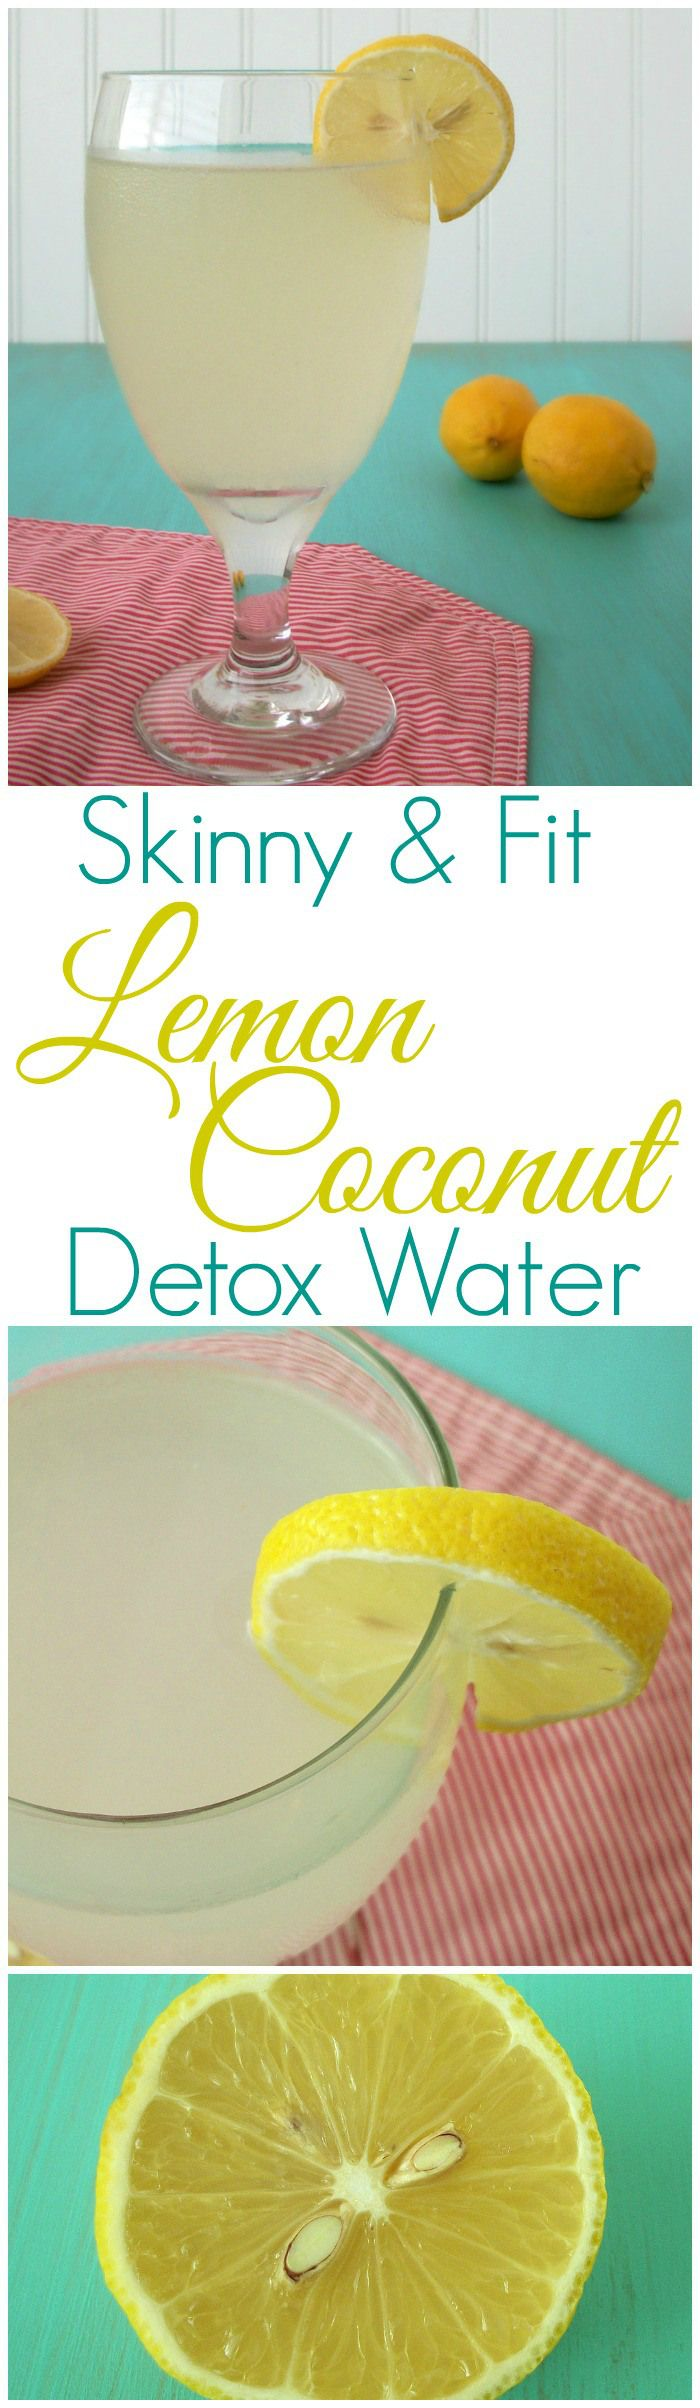 Skinny & Fit Lemon Coconut Detox Water | A Paleo, Grain-Free, Clean Eating Health & Fitness Blog